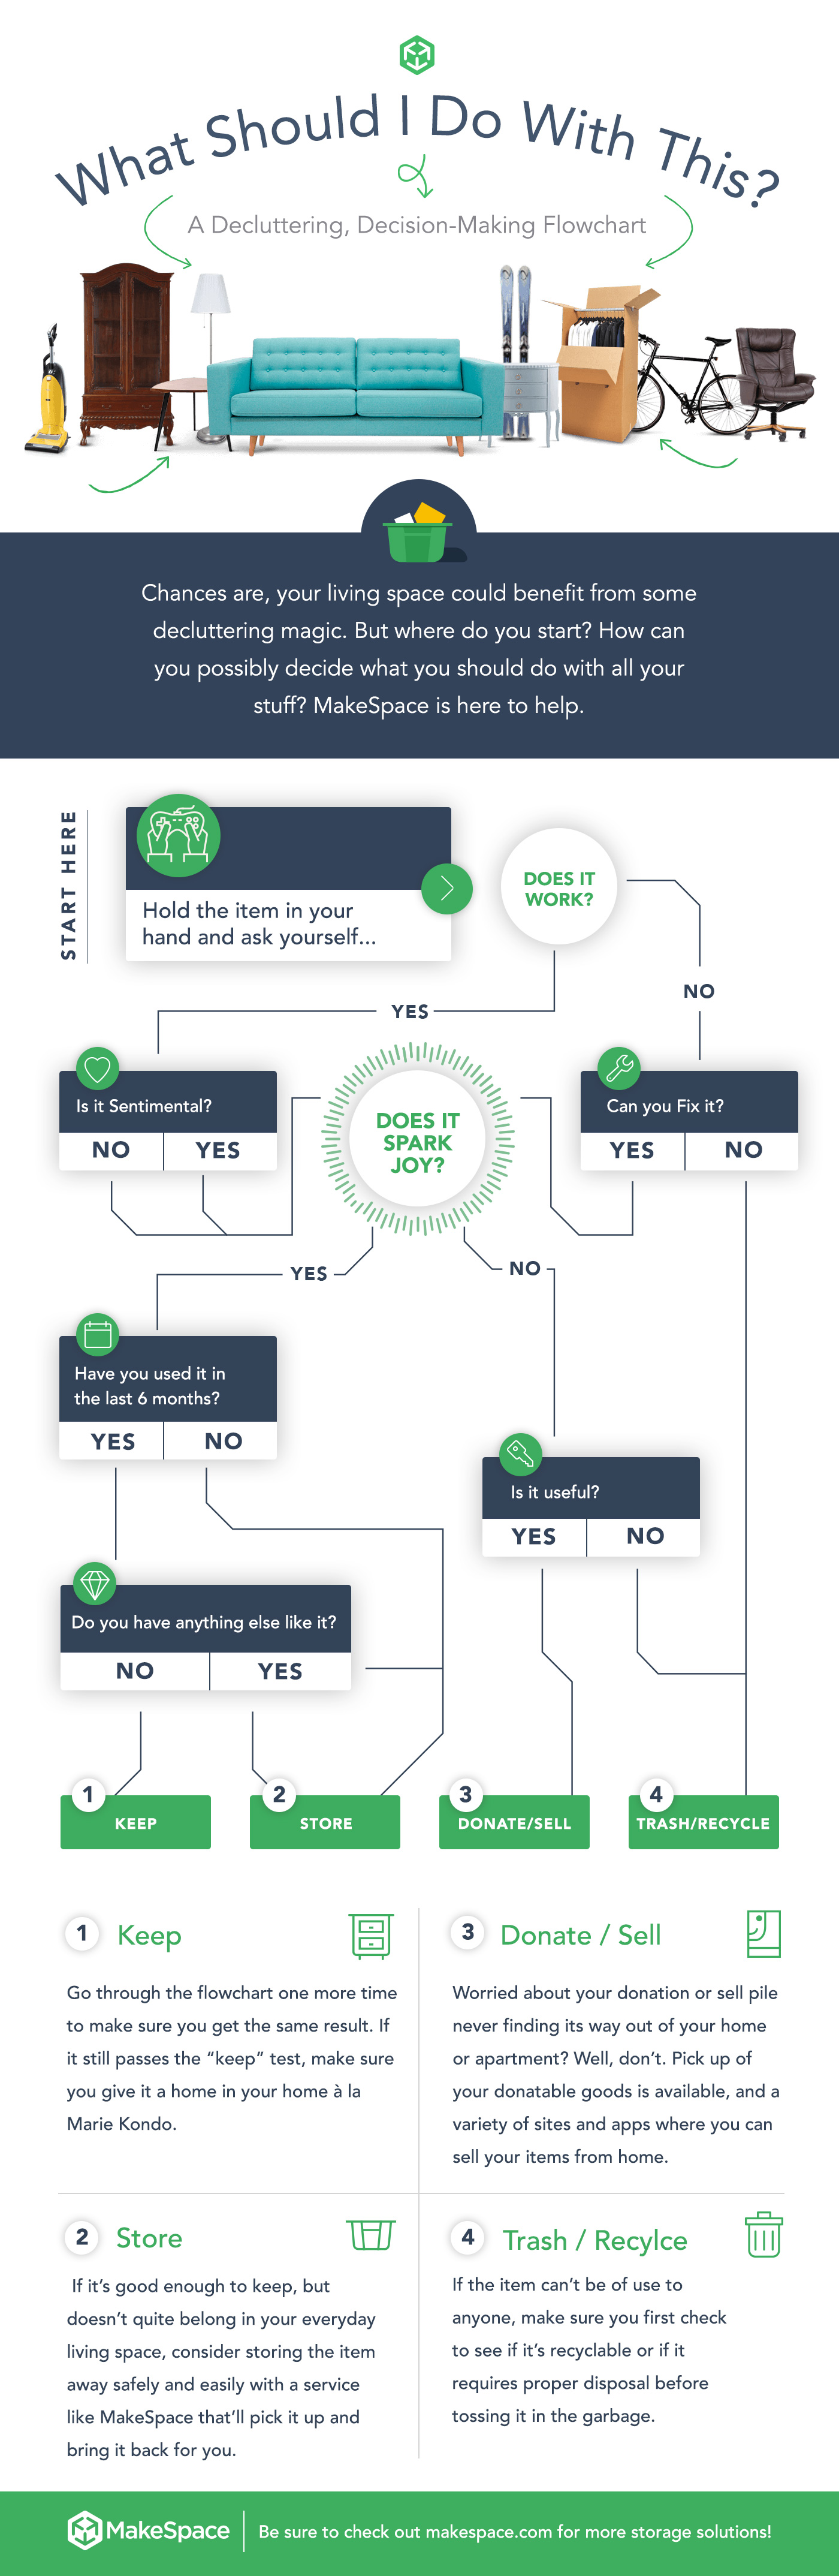 Decluttering Flowchart by MakeSpace, a full-service storage company that picks up, stores, and delivers your stuff so you never have to visit a self-storage unit